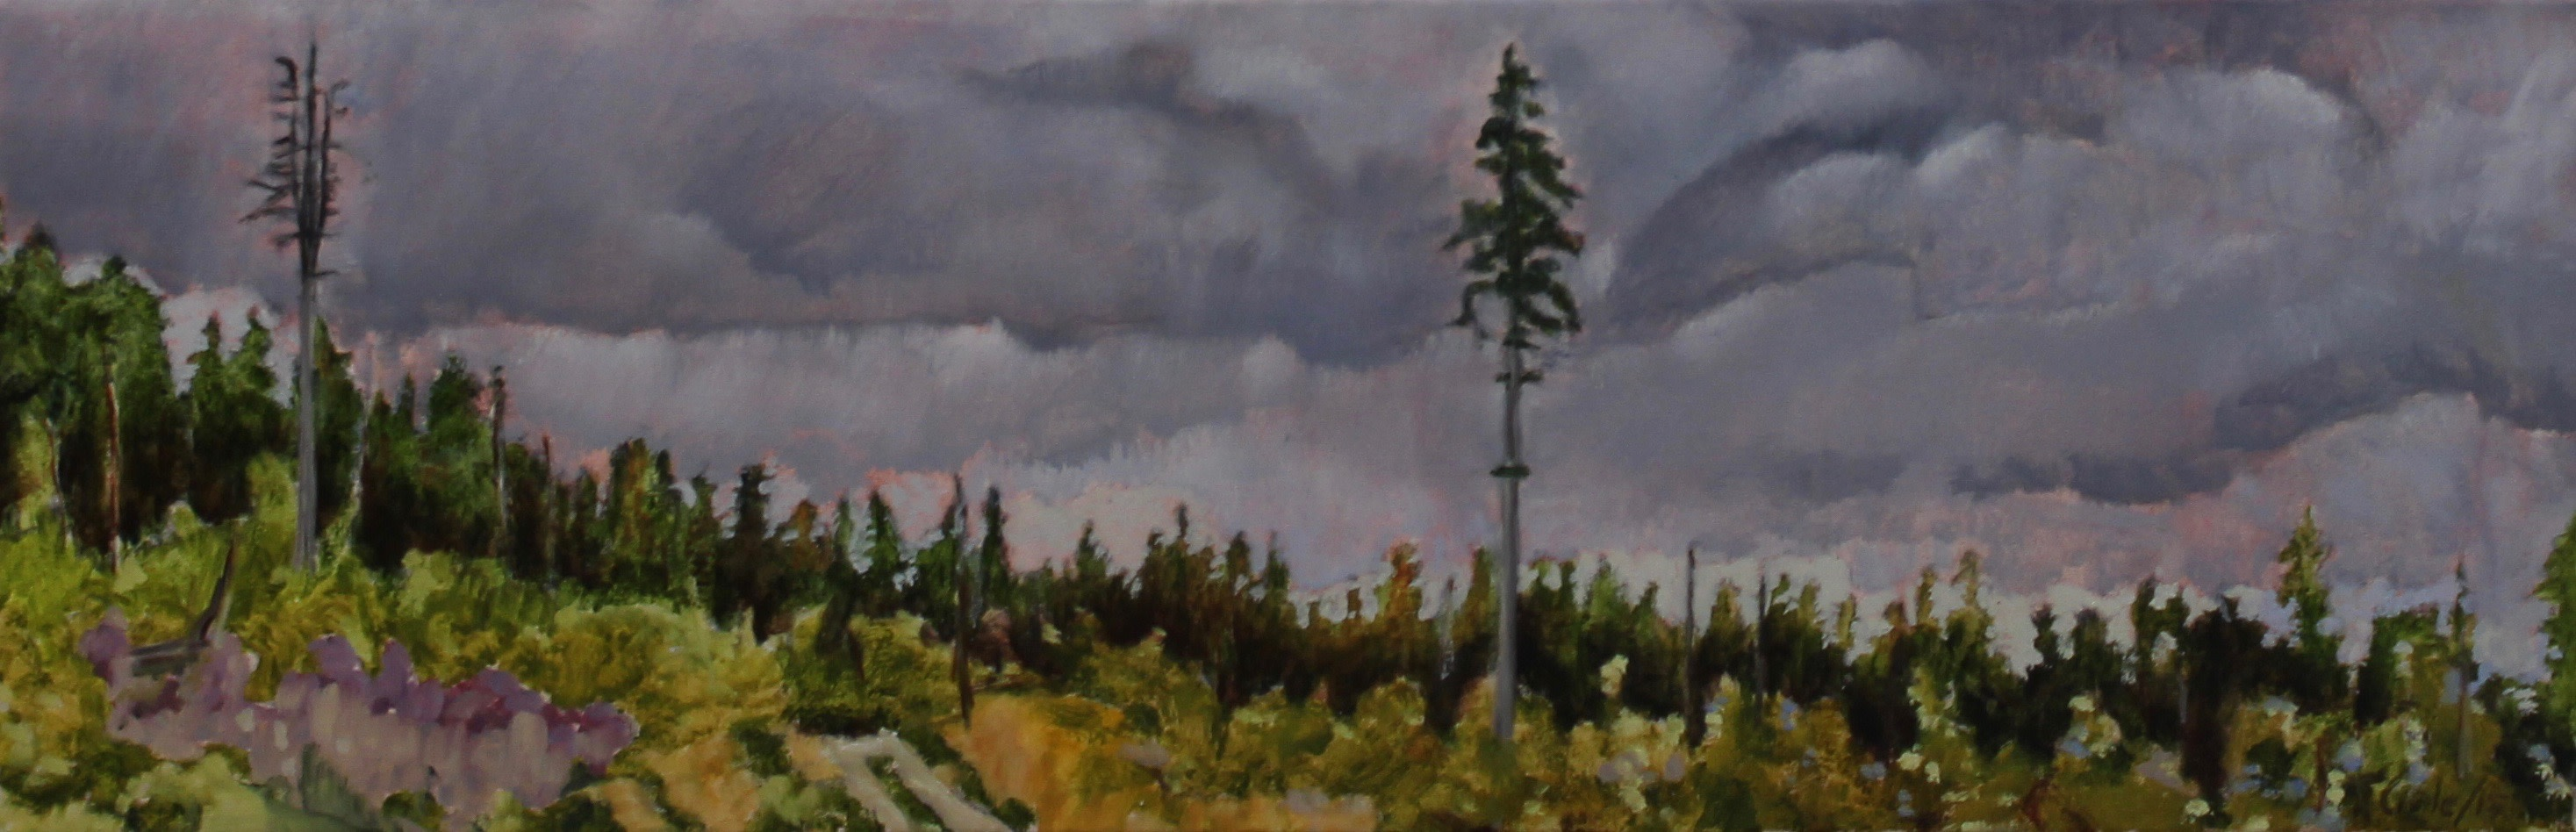 STUDY FOR EMILY'S TREE - 12X36 - OIL ON CANVAS - 2015